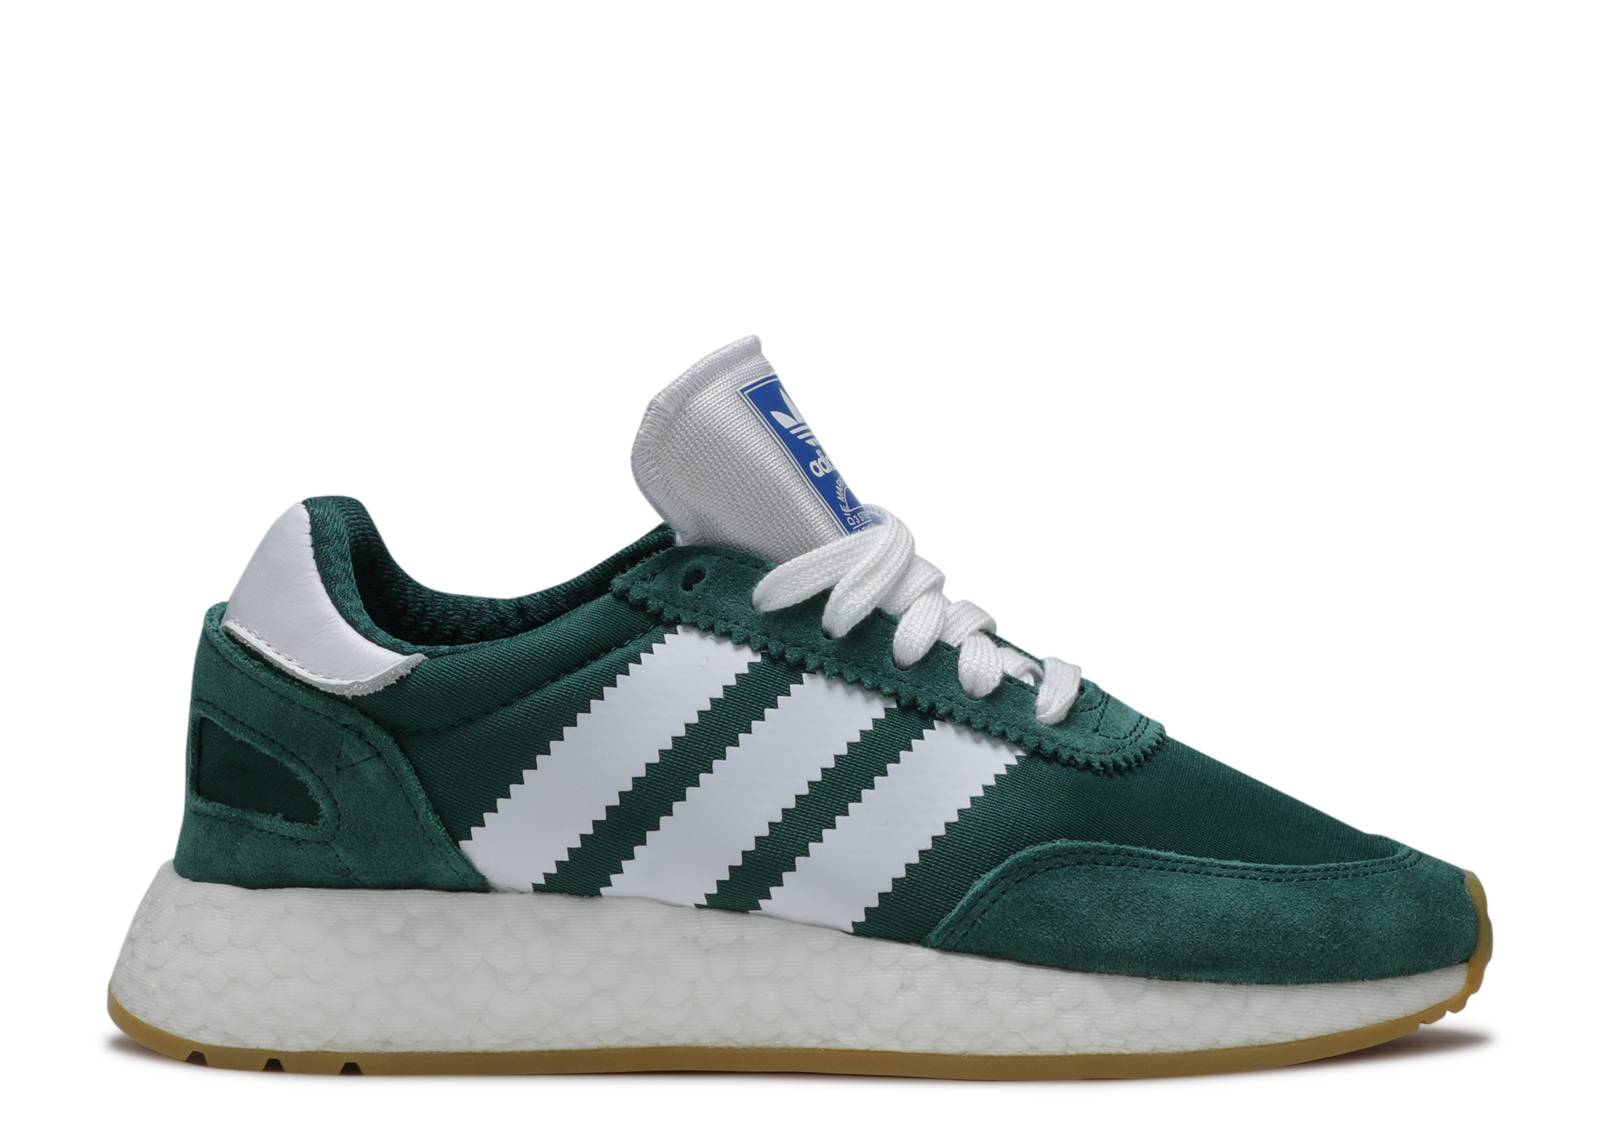 Experto azufre Absoluto  Wmns I 5923 'Collegiate Green' - Adidas - CG6022 - collegiate green/cloud  white/gum | Flight Club